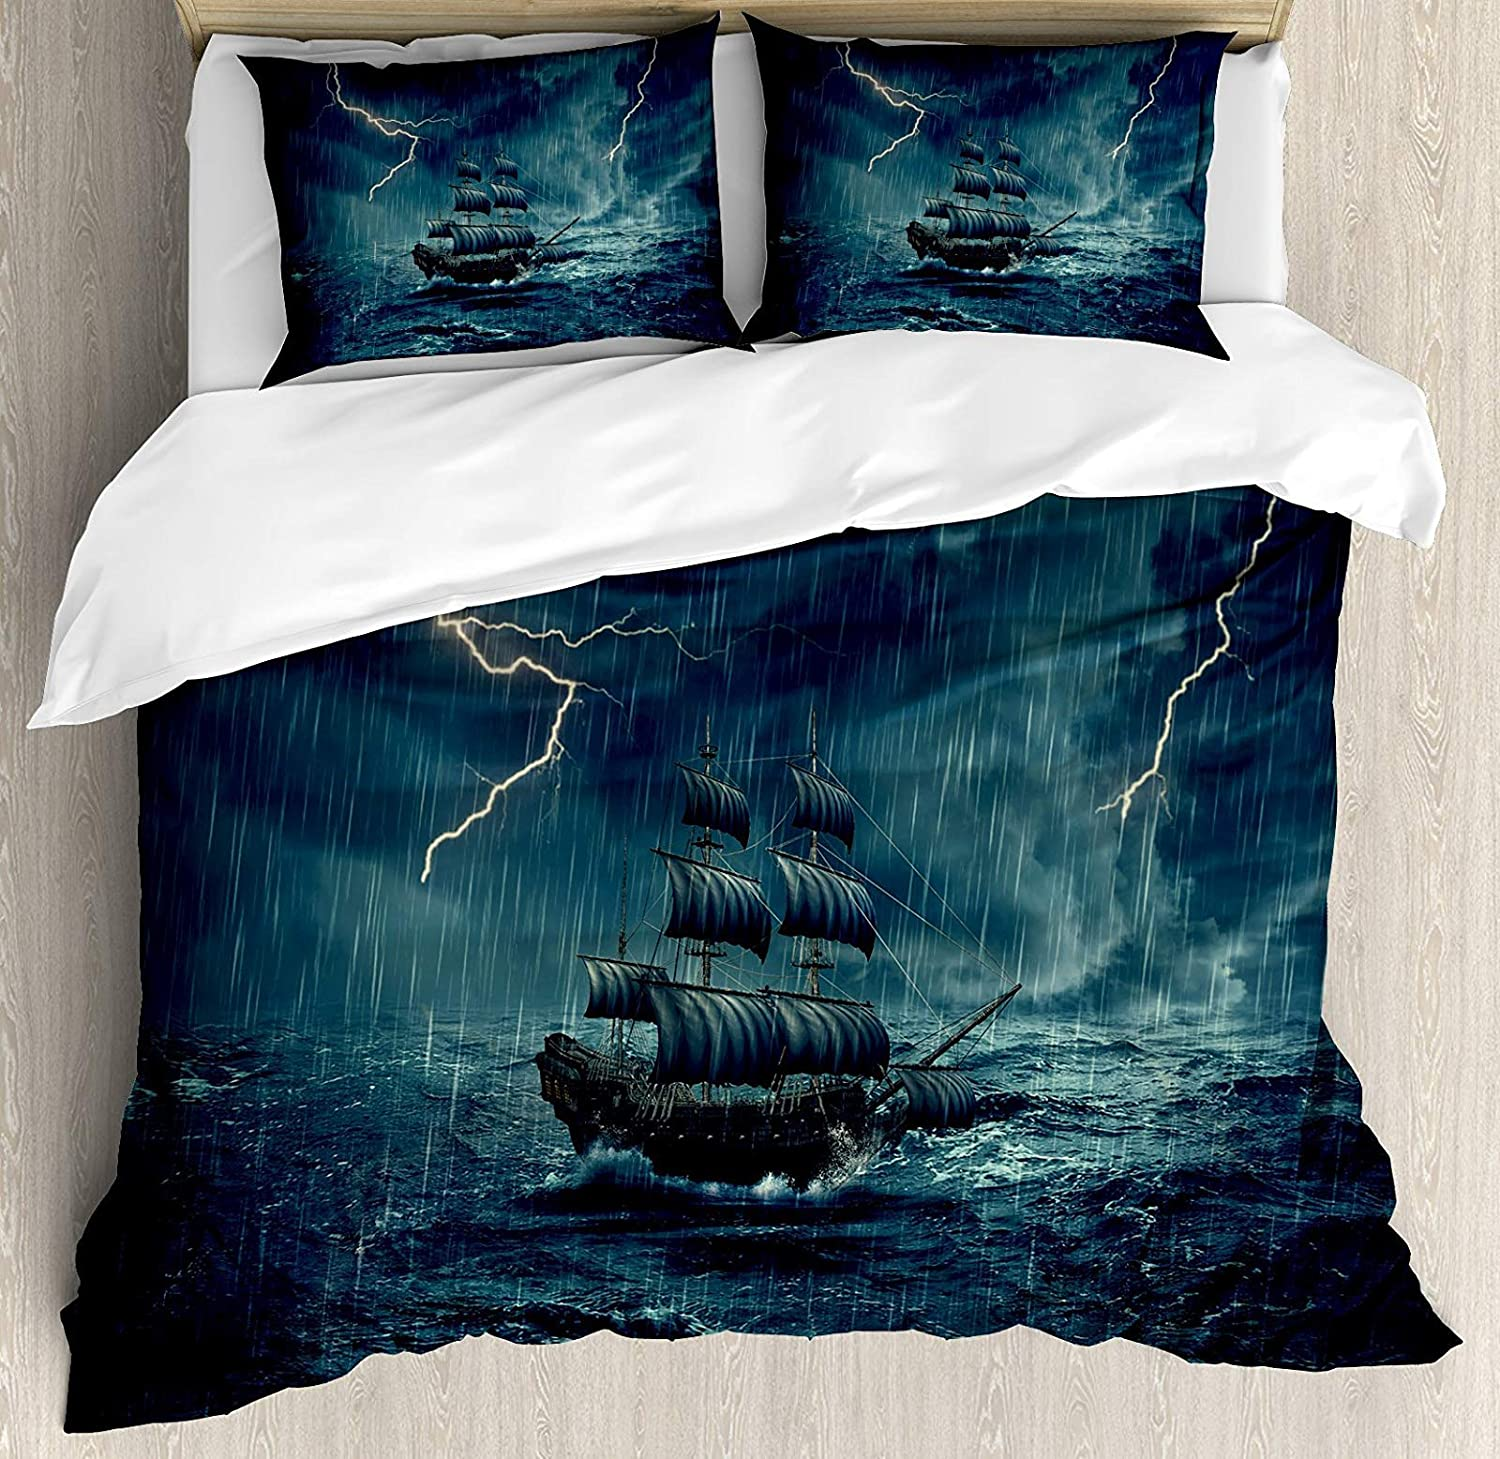 Landscape 4 Pcs Bedding Set Full Size, Stormy Rainy Weather Waves Pirate Vintage Ship Sailing Oil Paint All Season Duvet Cover Bed Set, White and Dark Cadet bluee